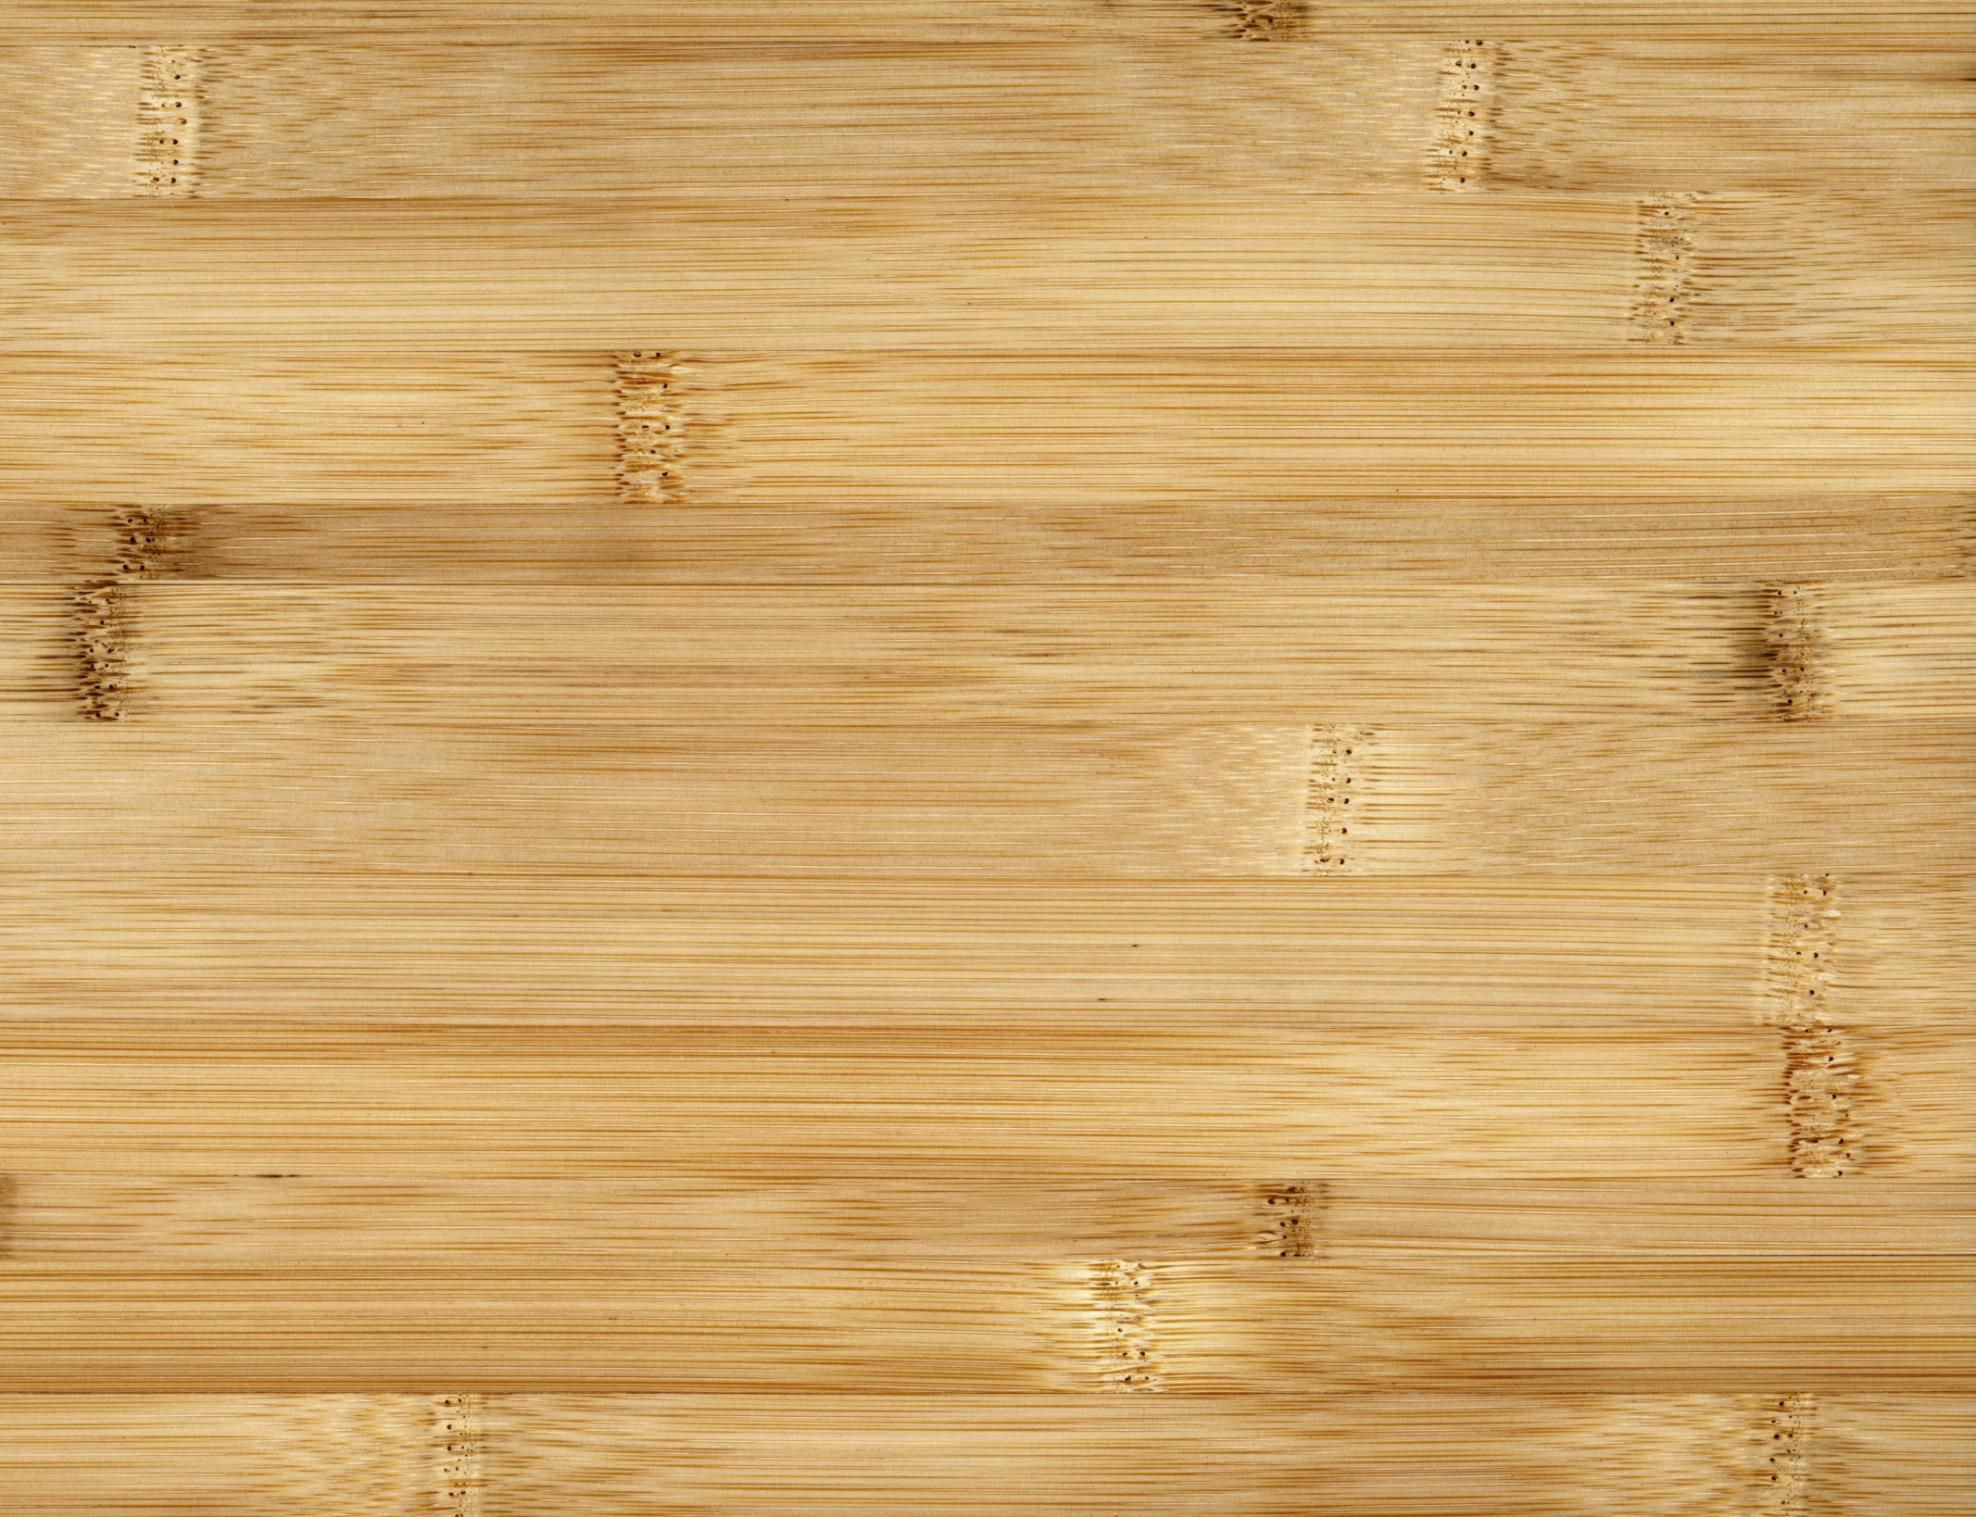 Good Hardwood Floor Wax Of How to Clean Bamboo Flooring within 200266305 001 56a2fd815f9b58b7d0d000cd